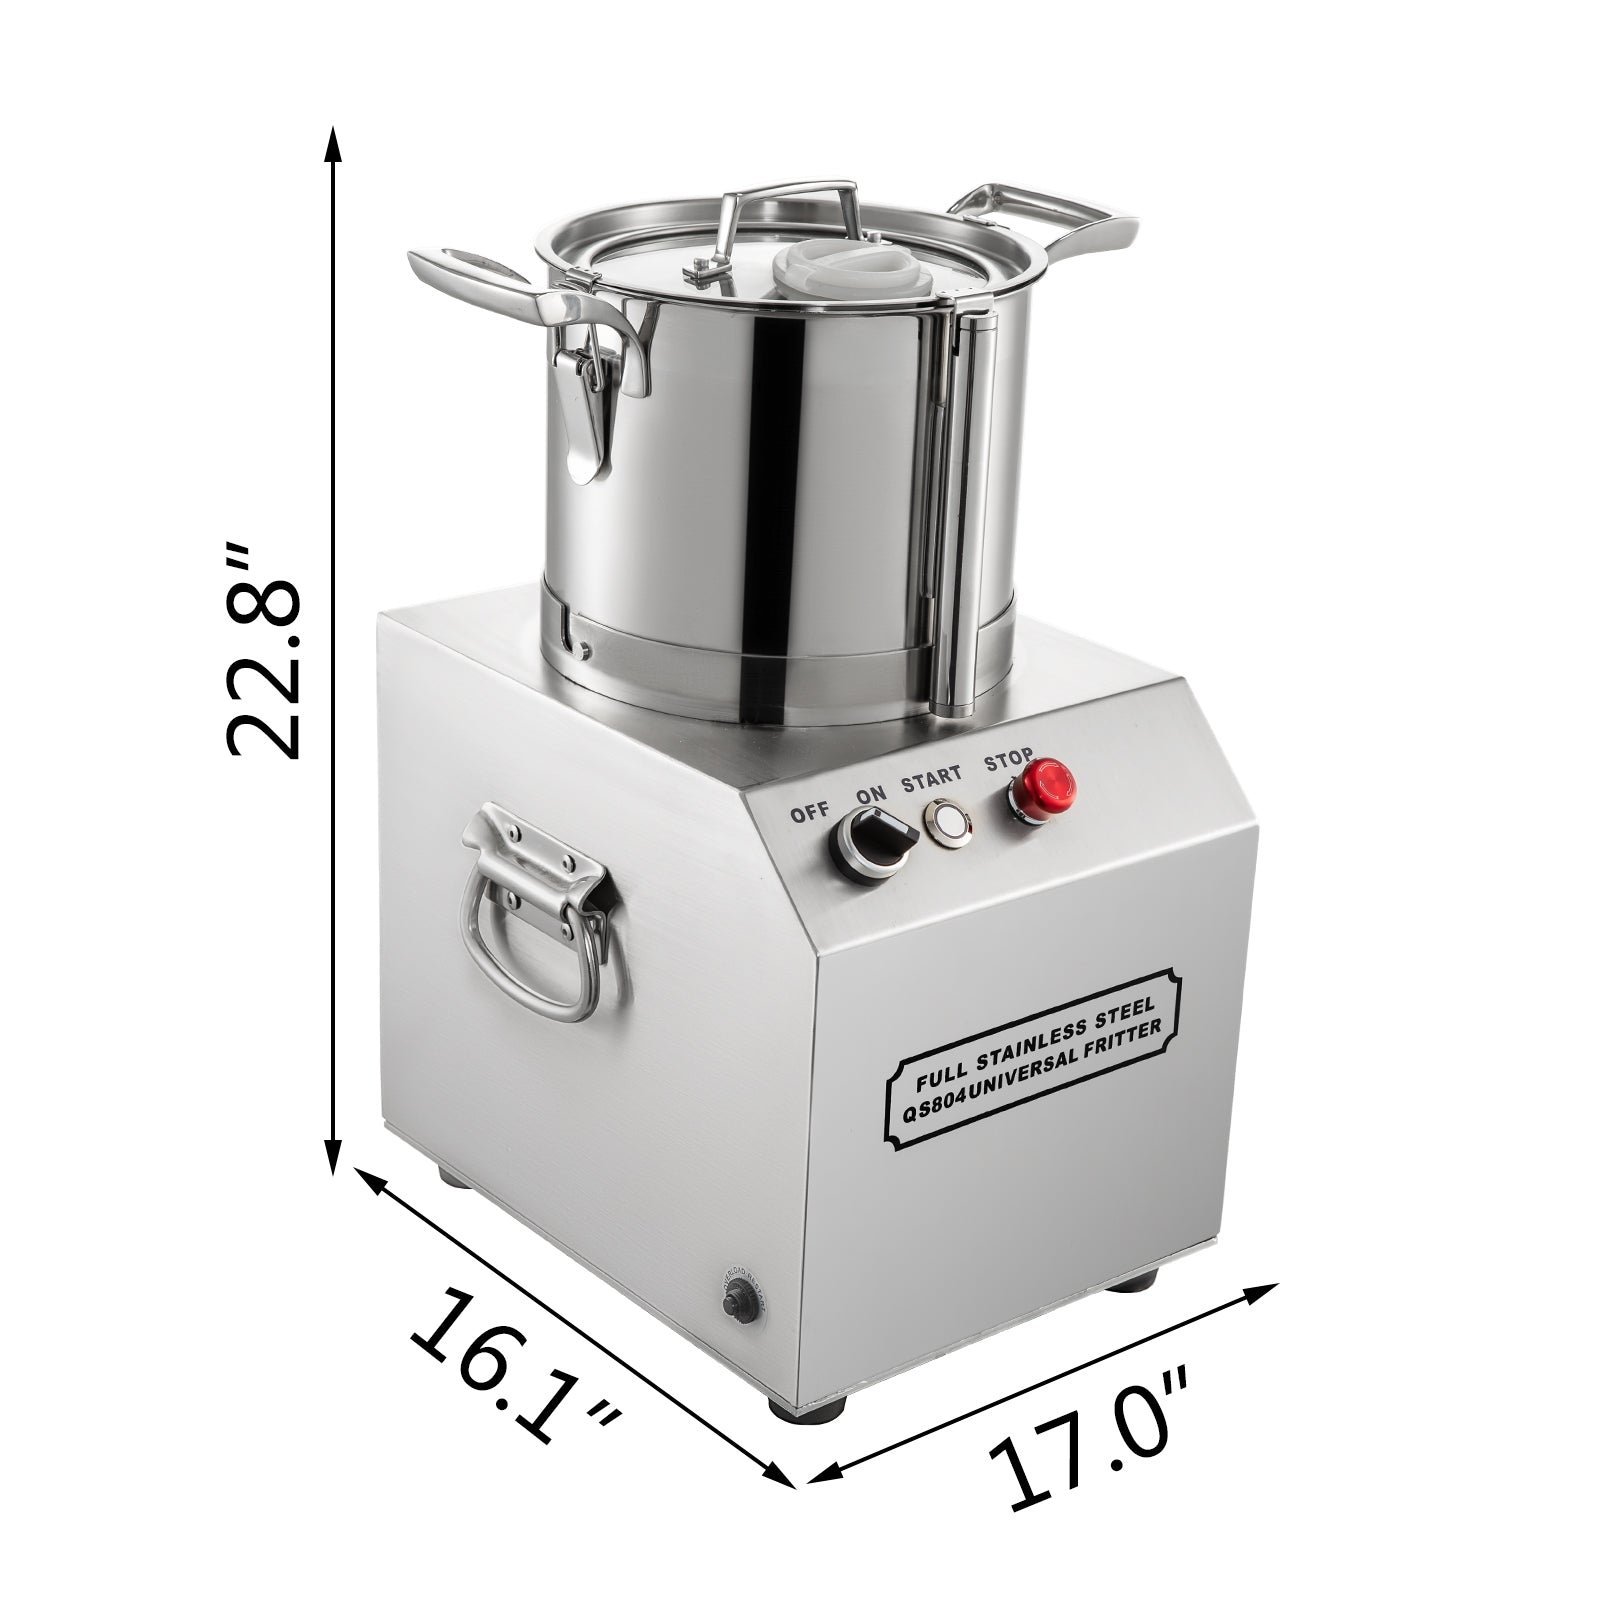 32L Commercial Grade Food Processor Blender S.Steel Tomato Chopper Grinder Dicer